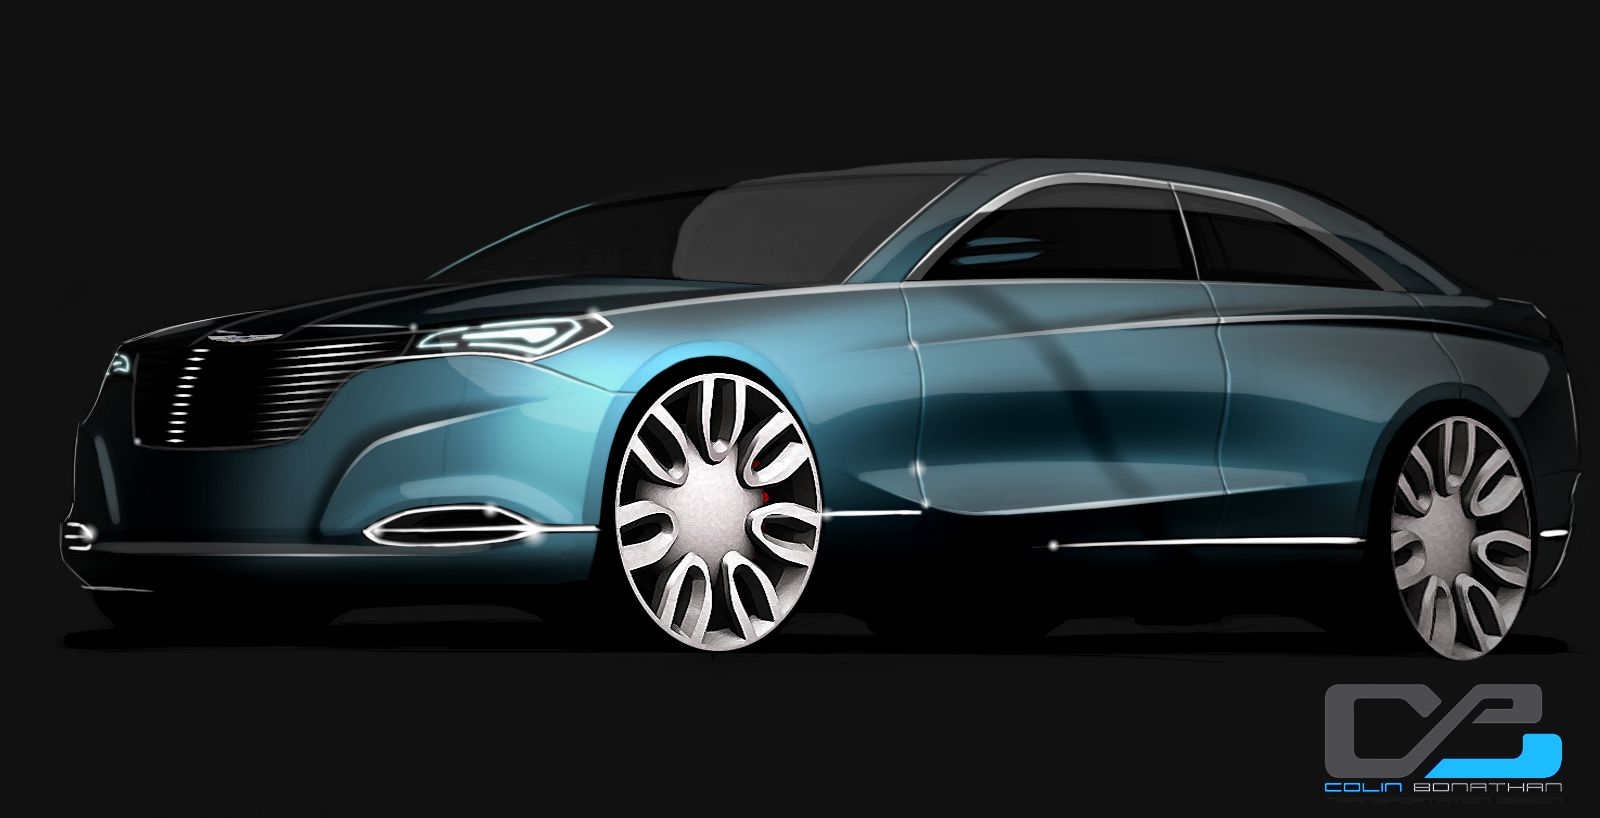 Next Generation 2014 Chrysler 200 Sedan Conceptualized Chrysler